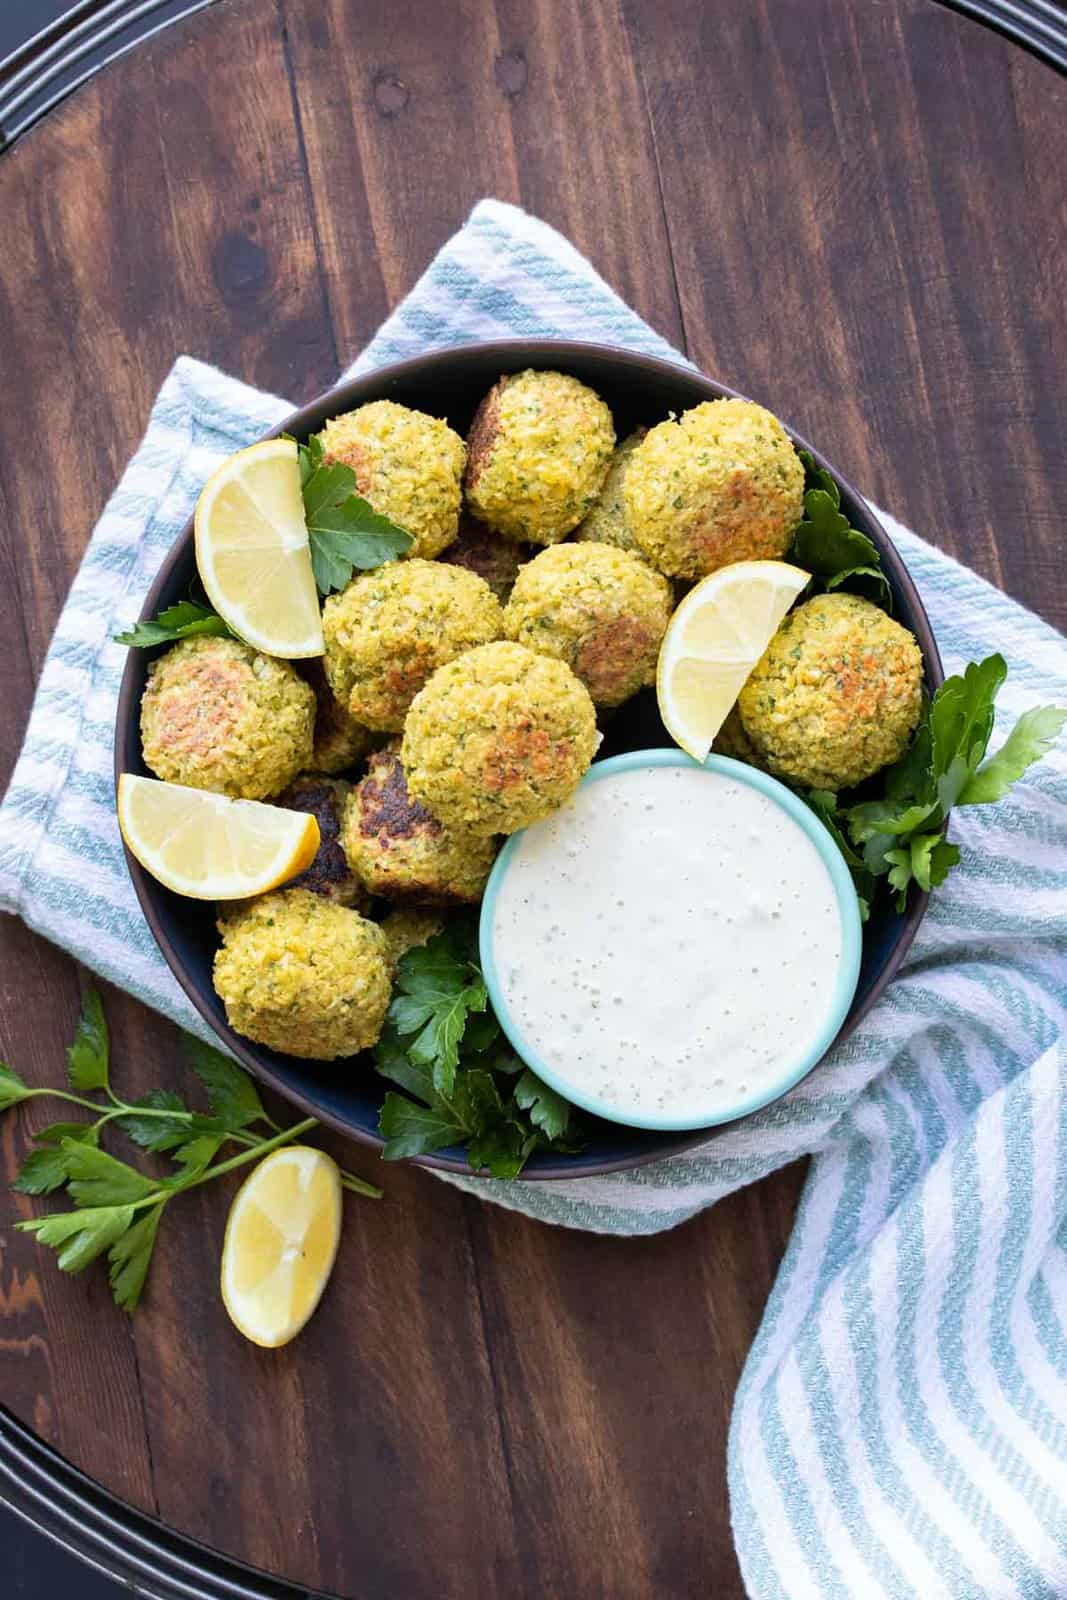 Black bowl filled with baked falafel and tahini dip